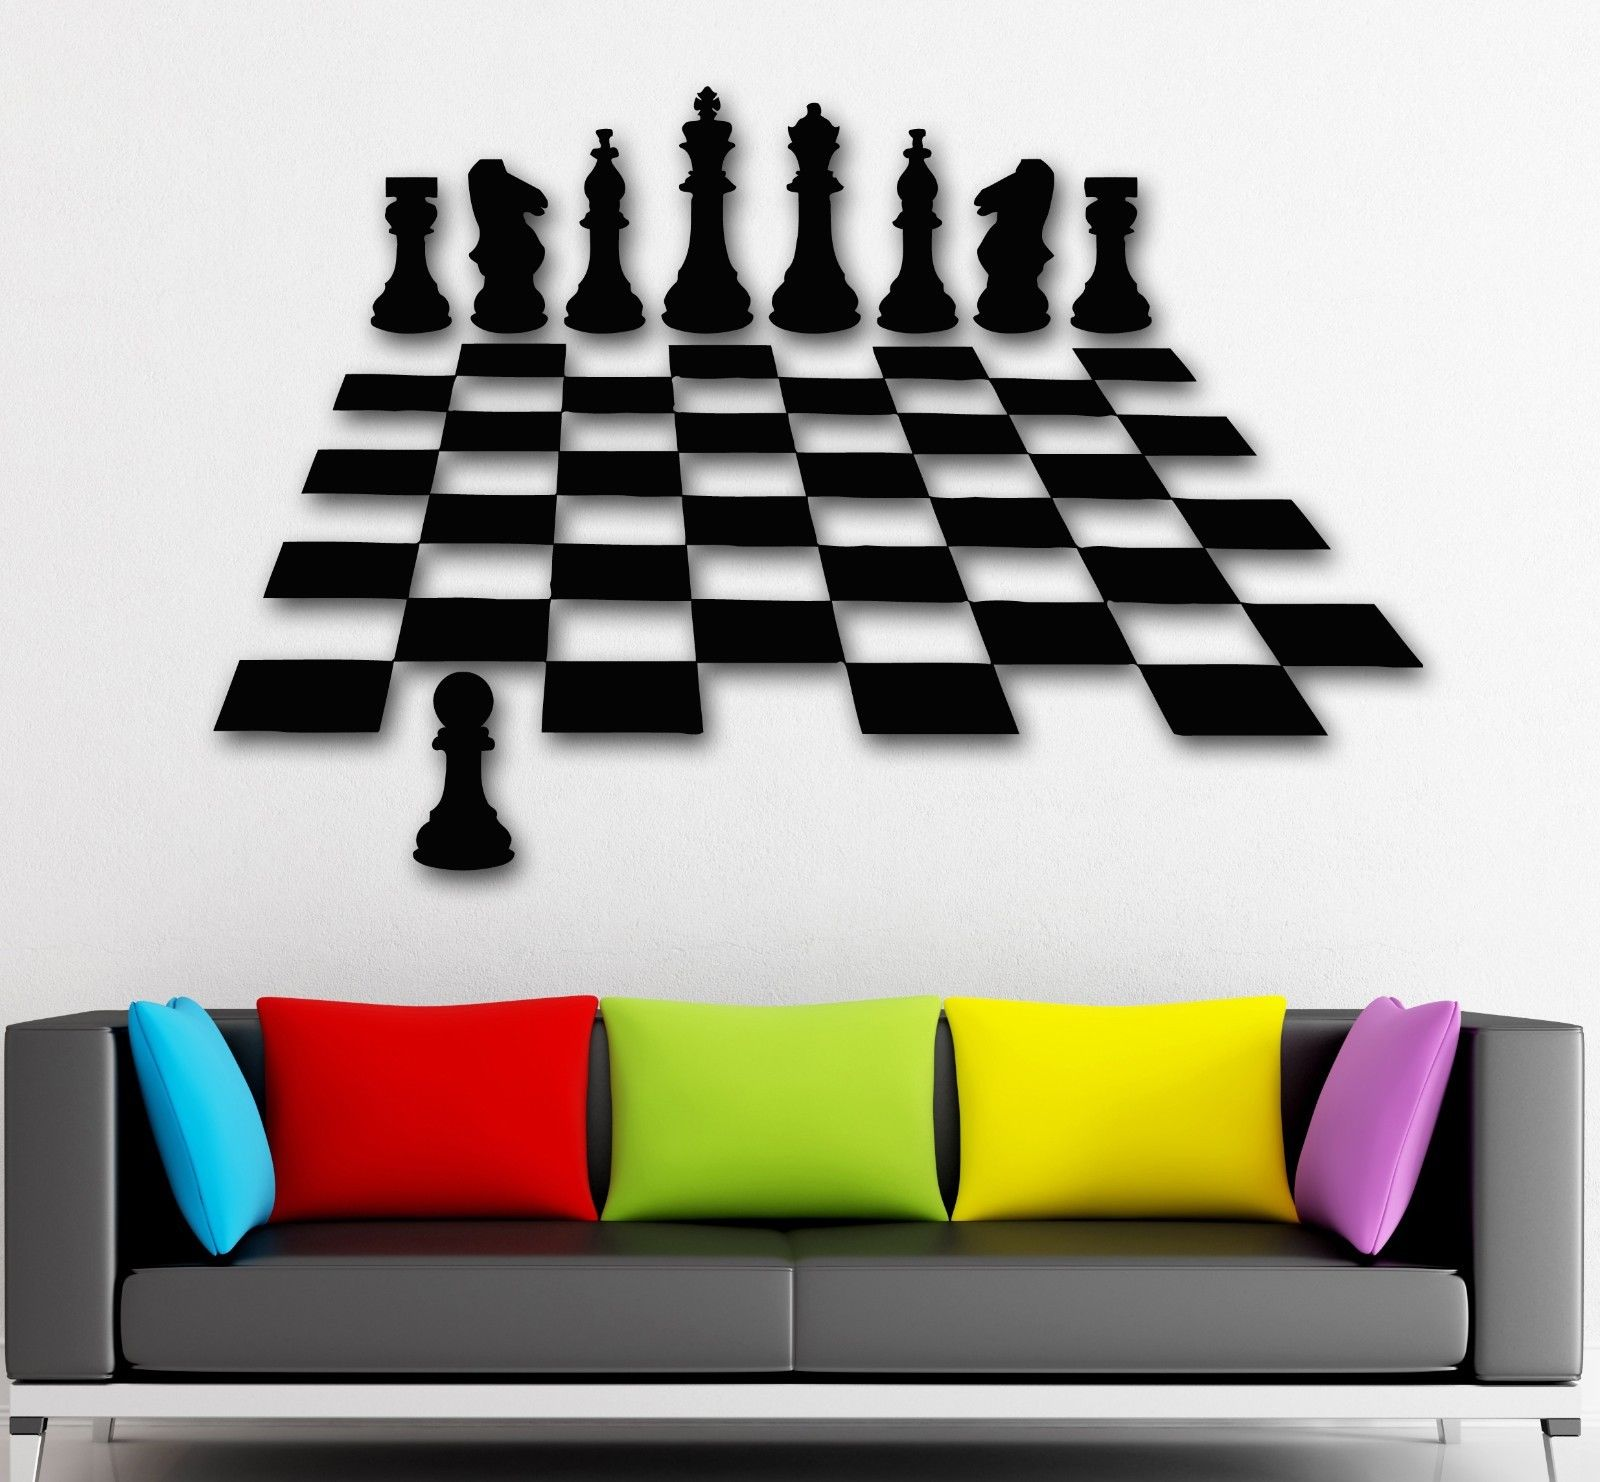 2016 new wall stickers vinyl decal chess intelligent game great home decor free shipping in wall - Wall decor stickers online shopping ...